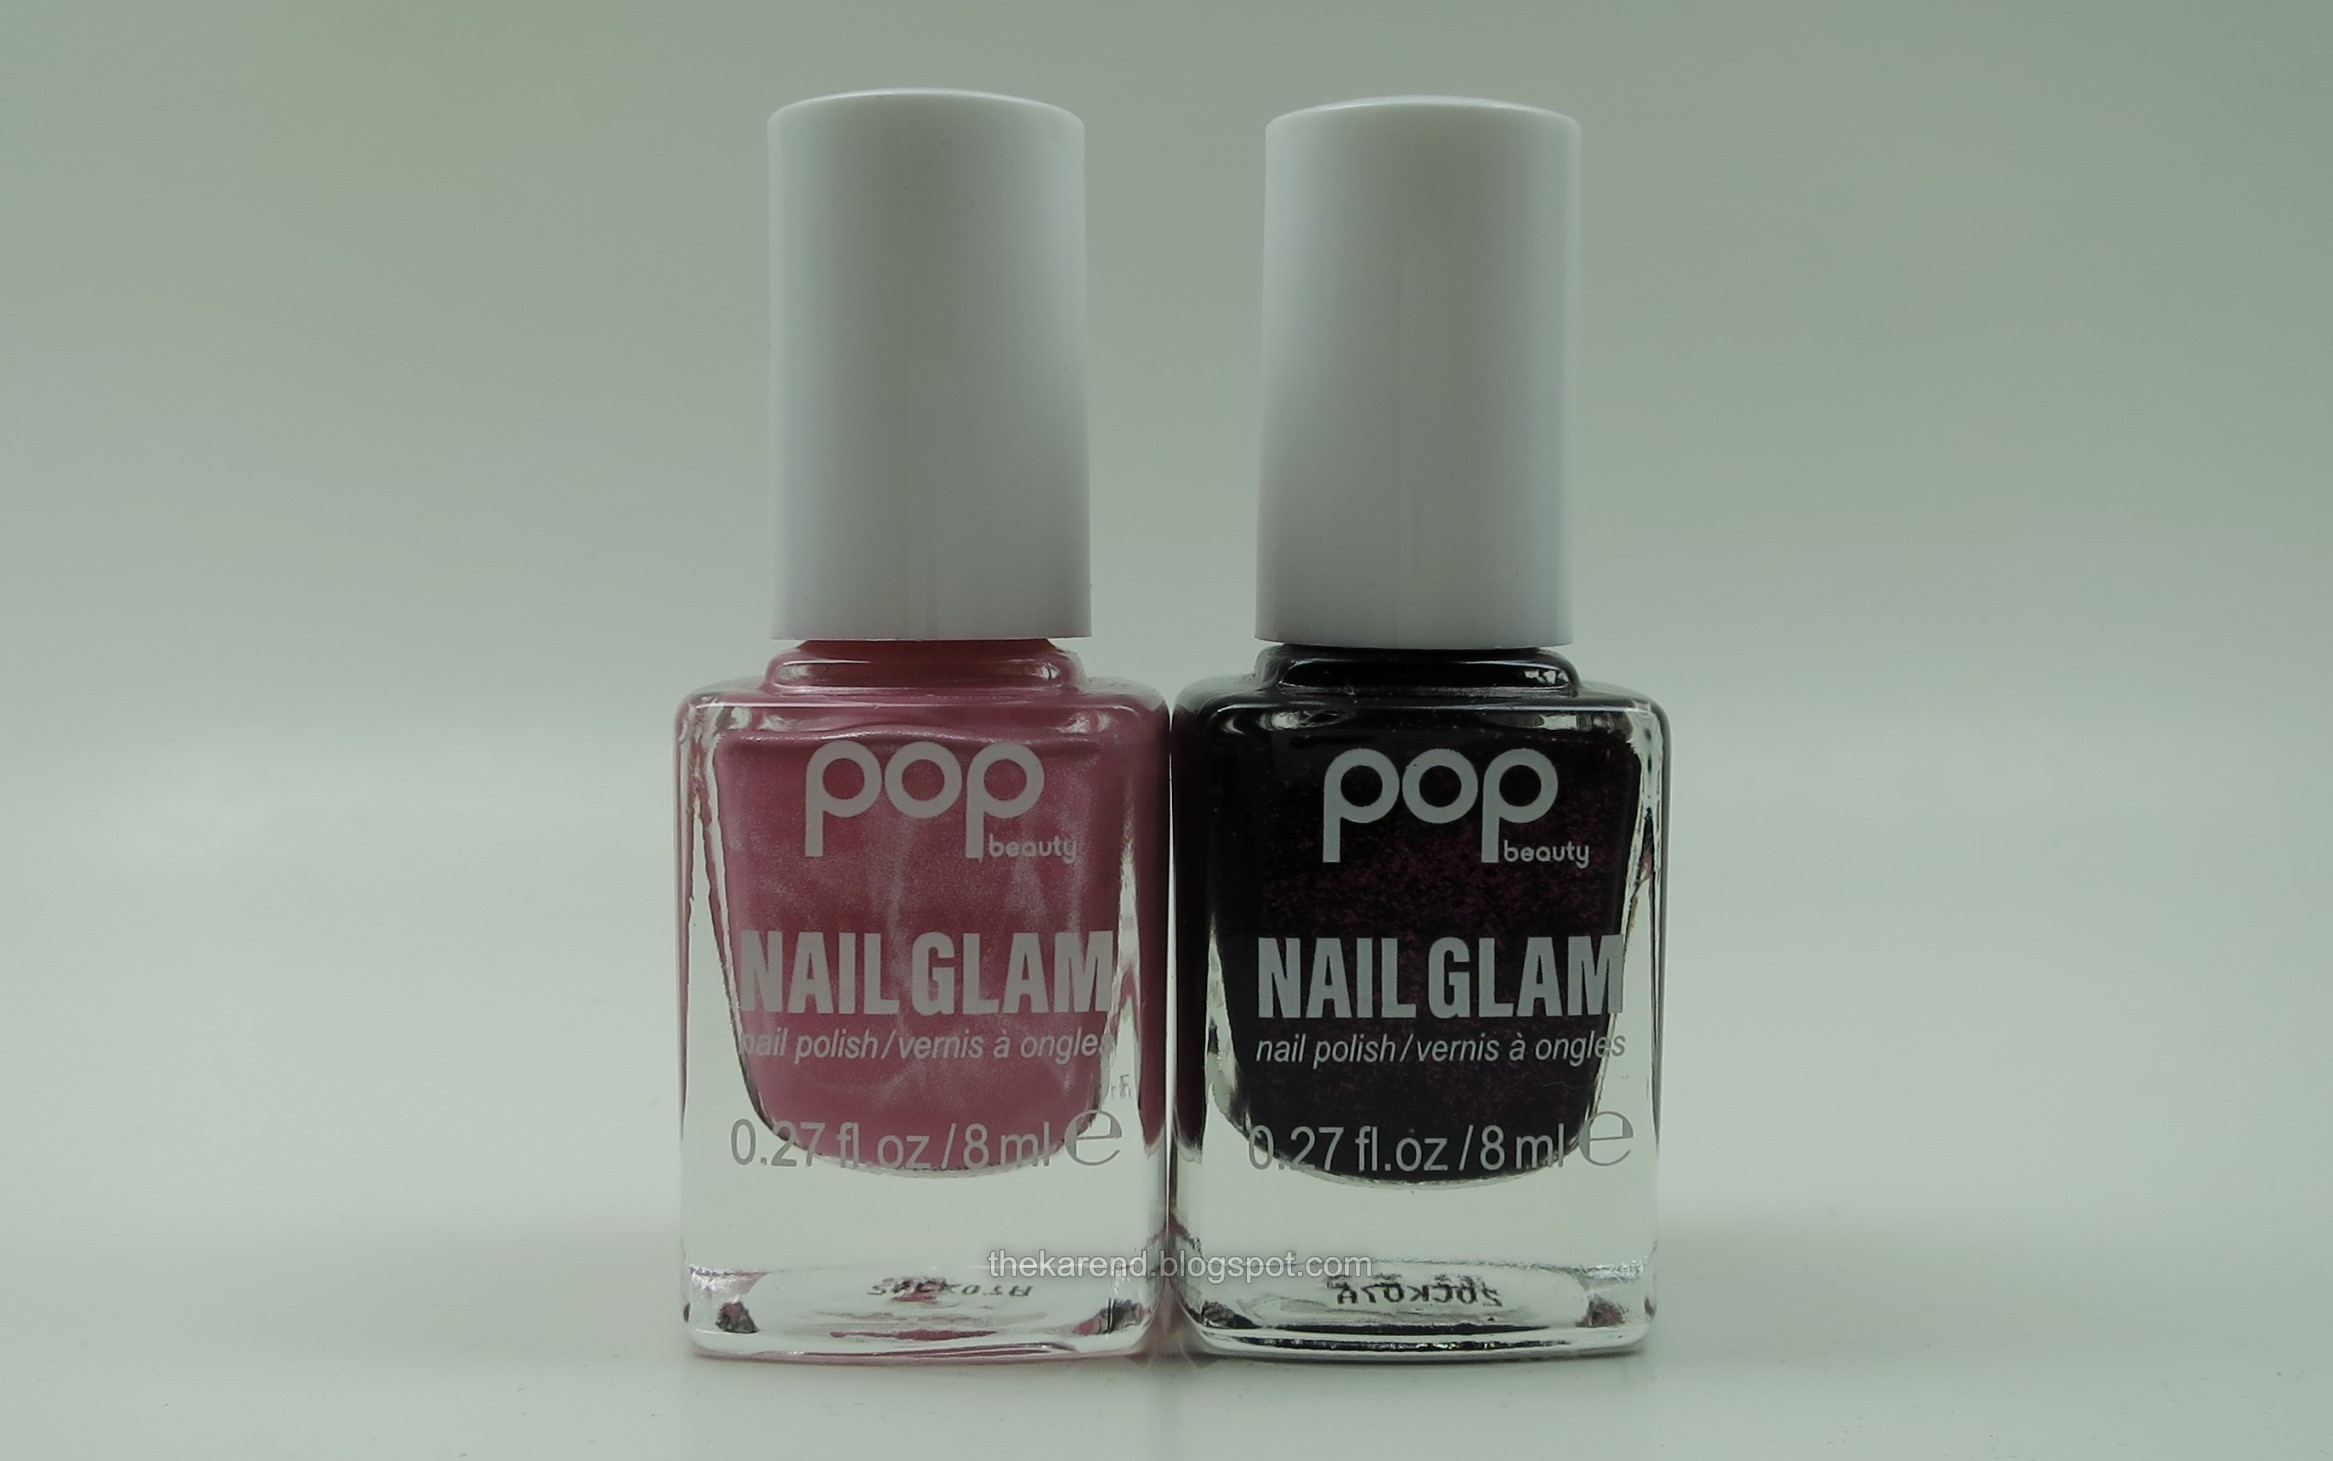 Pop Beauty Nail Glam ZZZ Pink and Black Cherry